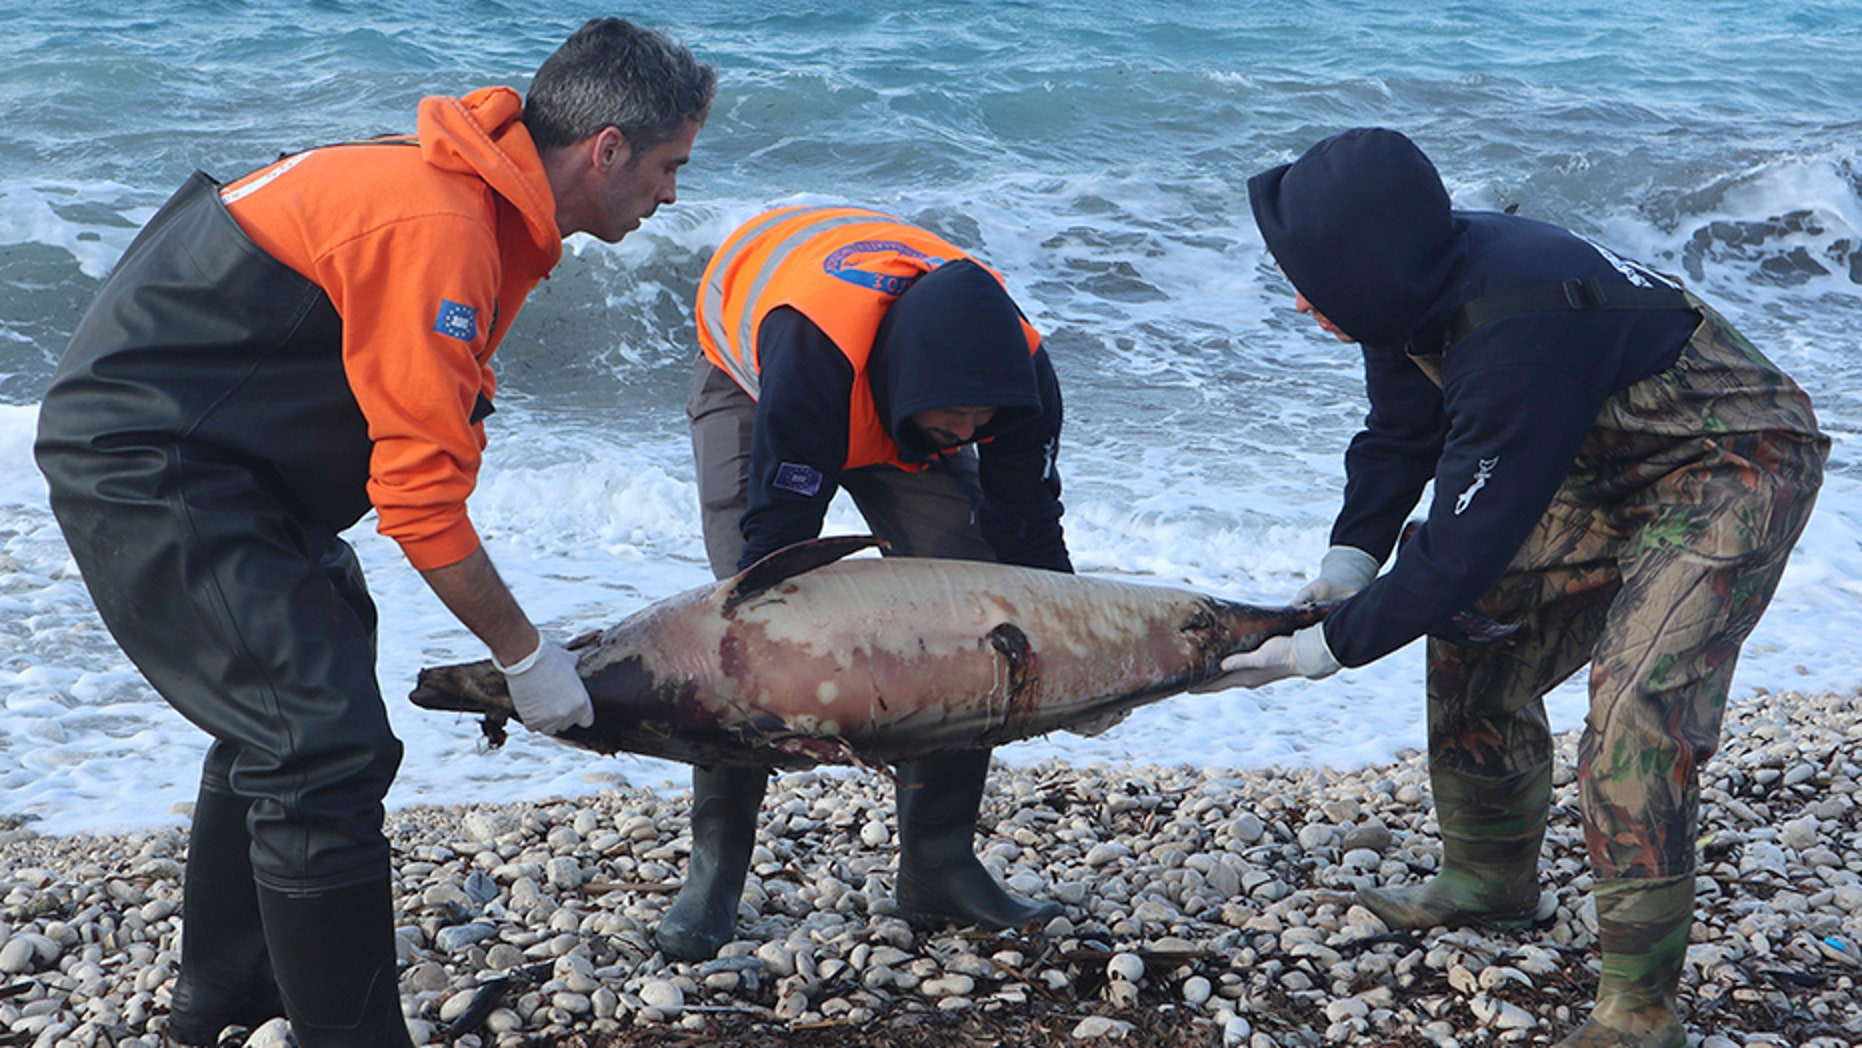 Archipelagos Institute of Marine Conservation members carry a dead dolphin at a beach on Greece's Samos island in February.